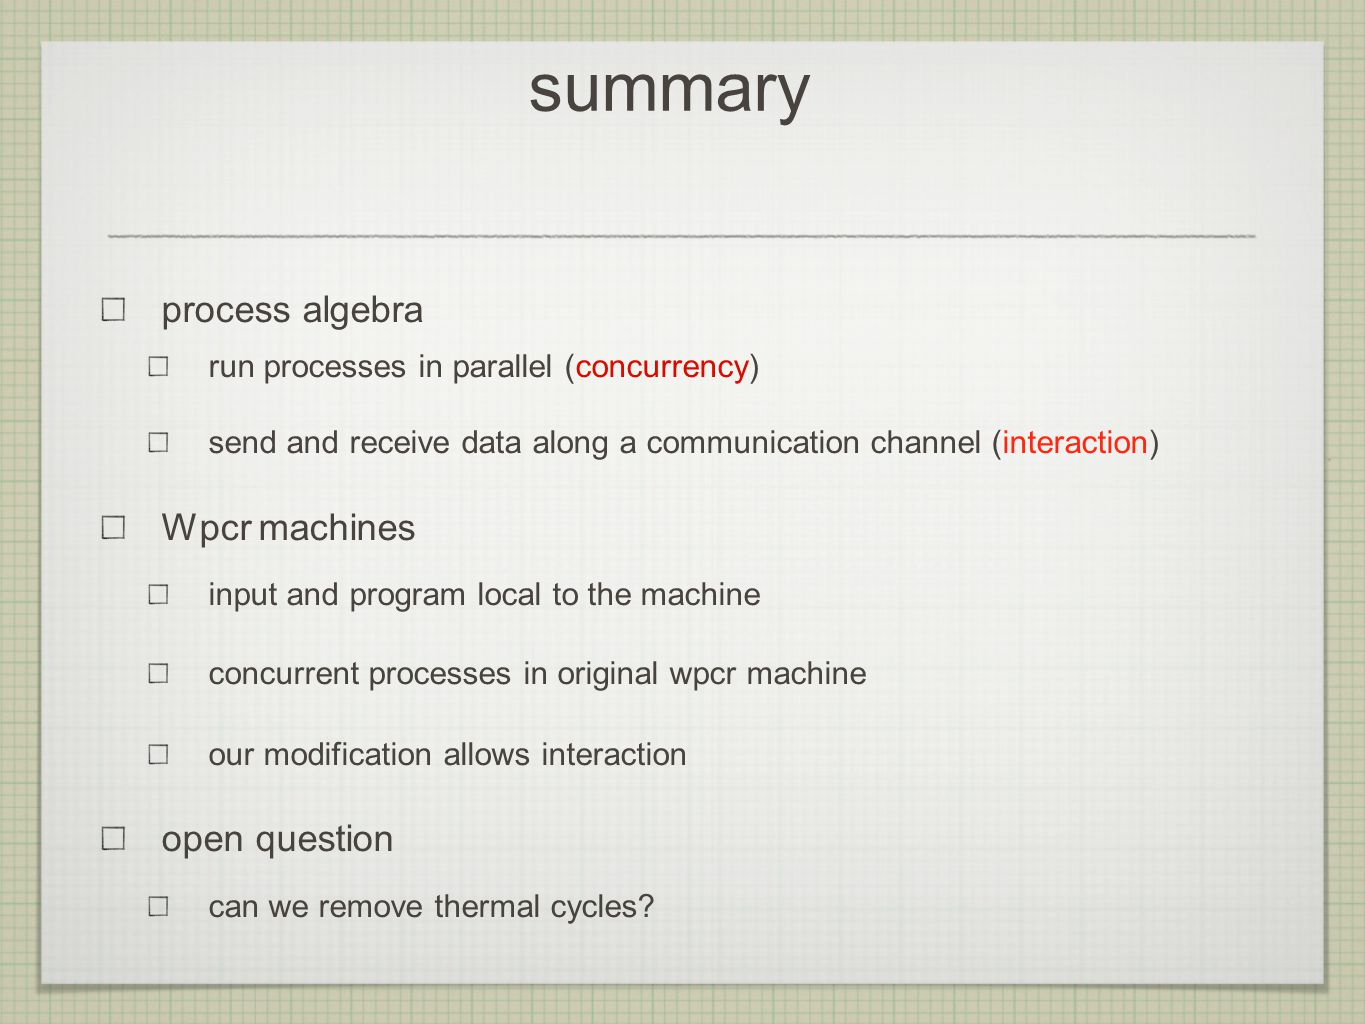 summary process algebra run processes in parallel (concurrency) send and receive data along a communication channel (interaction) Wpcr machines input and program local to the machine concurrent processes in original wpcr machine our modification allows interaction open question can we remove thermal cycles